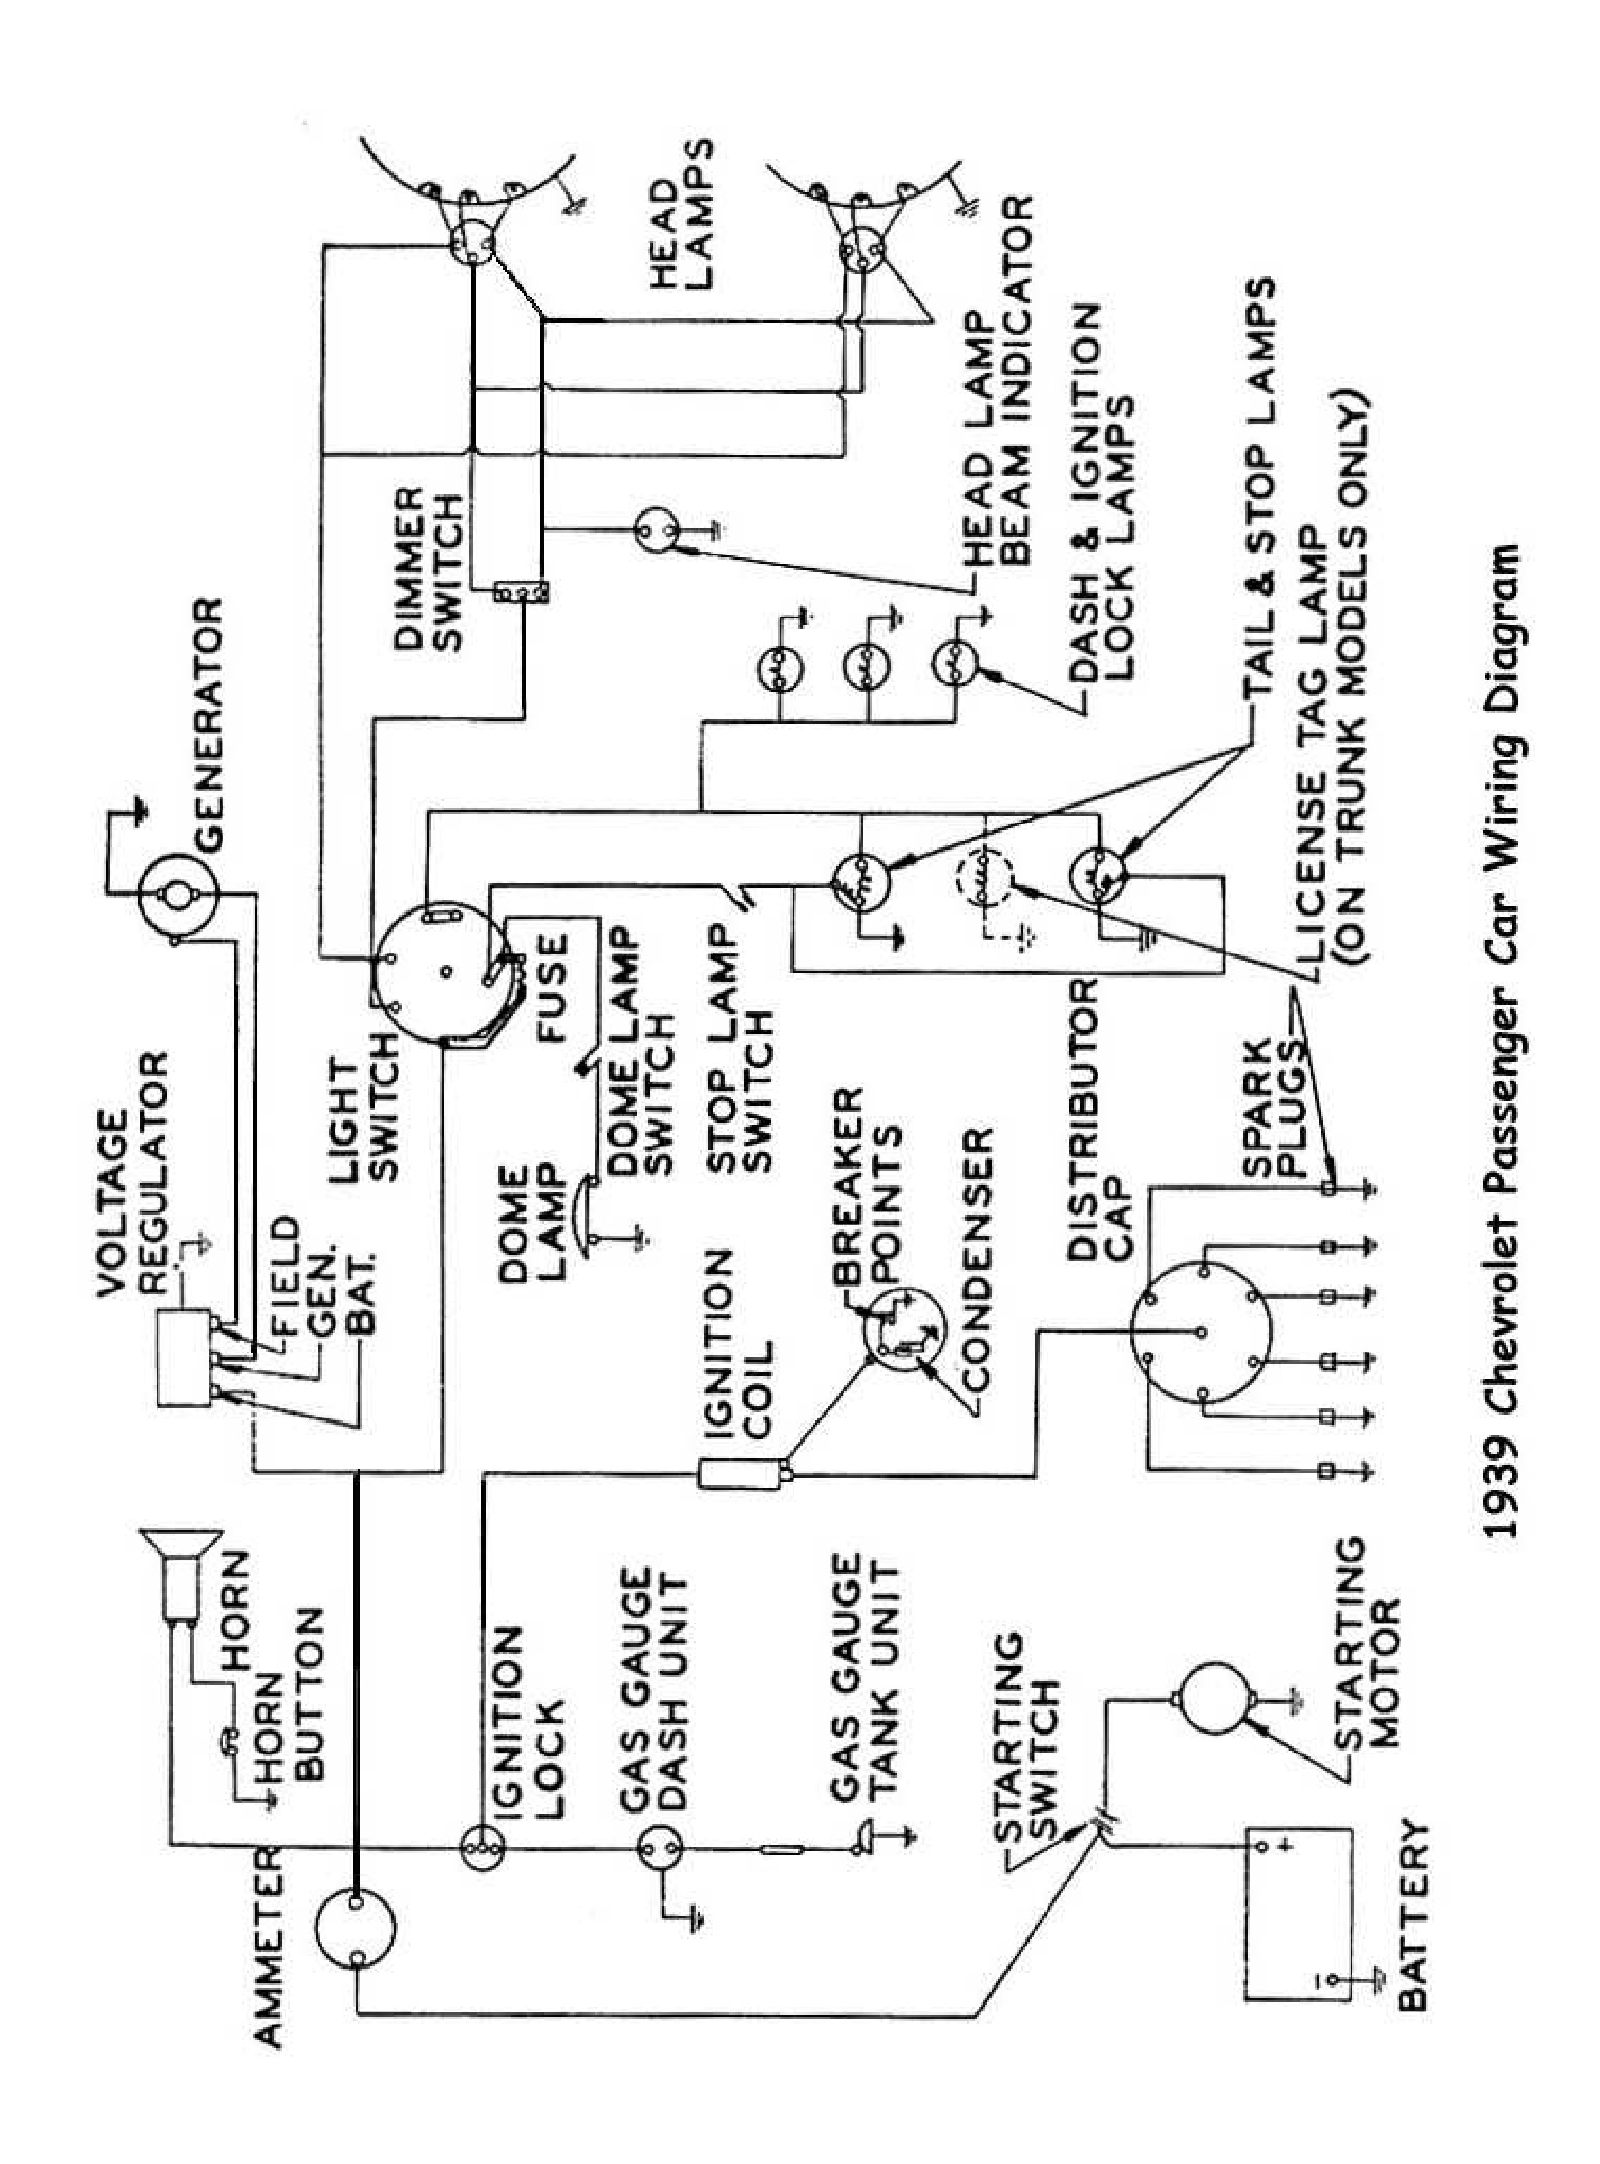 39car chevy wiring diagrams Old House Wiring Diagrams at panicattacktreatment.co